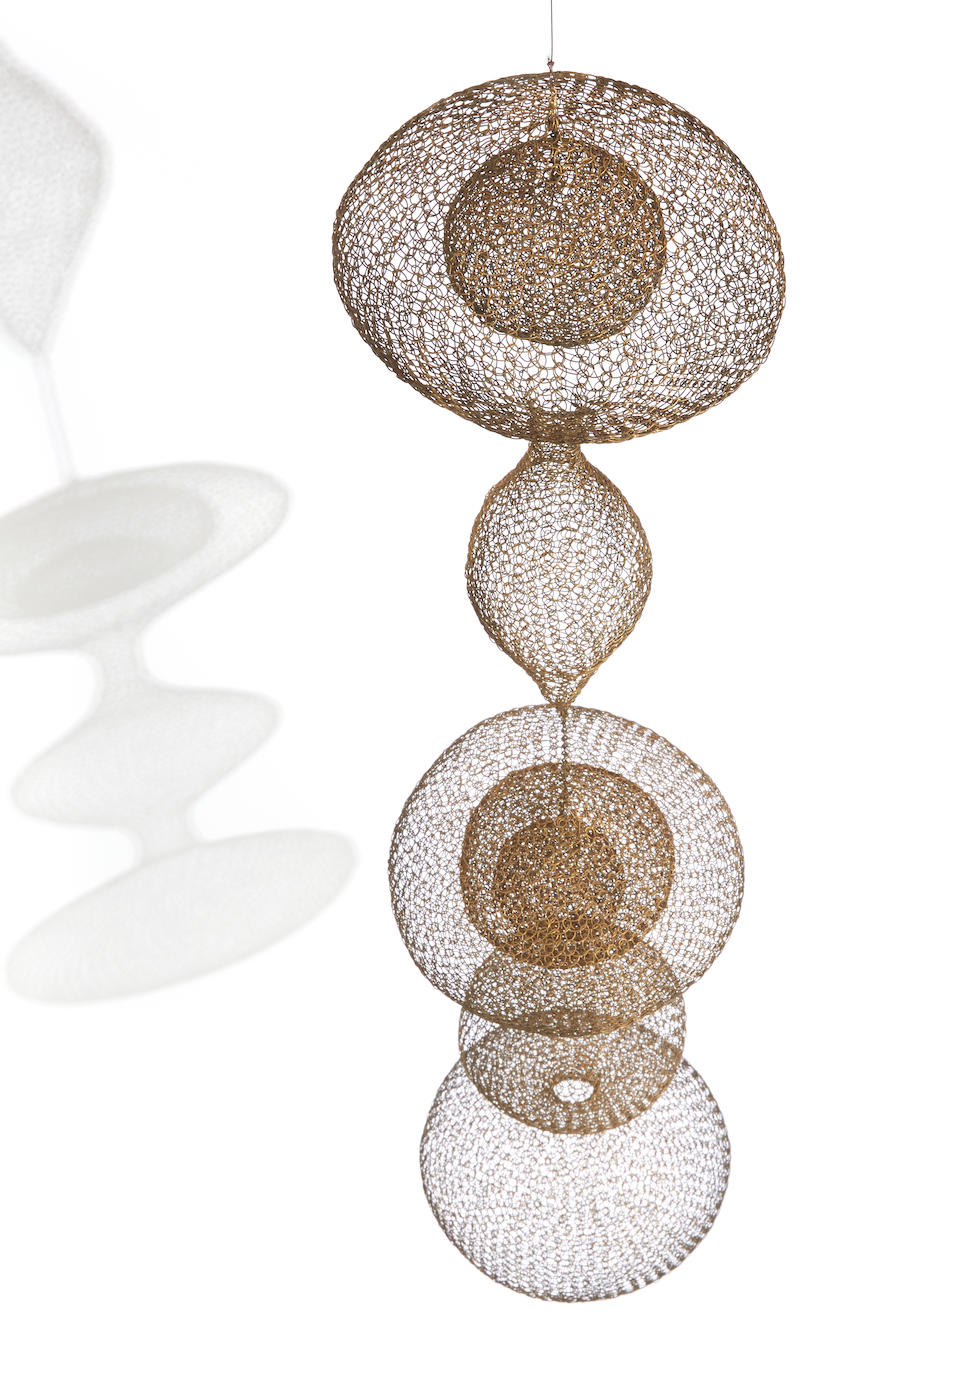 Ruth Asawa (American, 1926-2013) Untitled (S.408, Hanging Five-Lobed, Two-Part Form, with the Second and Third Lobes Attached by Chain and Interior Spheres in the First and Third Lobes) circa 1953-1954